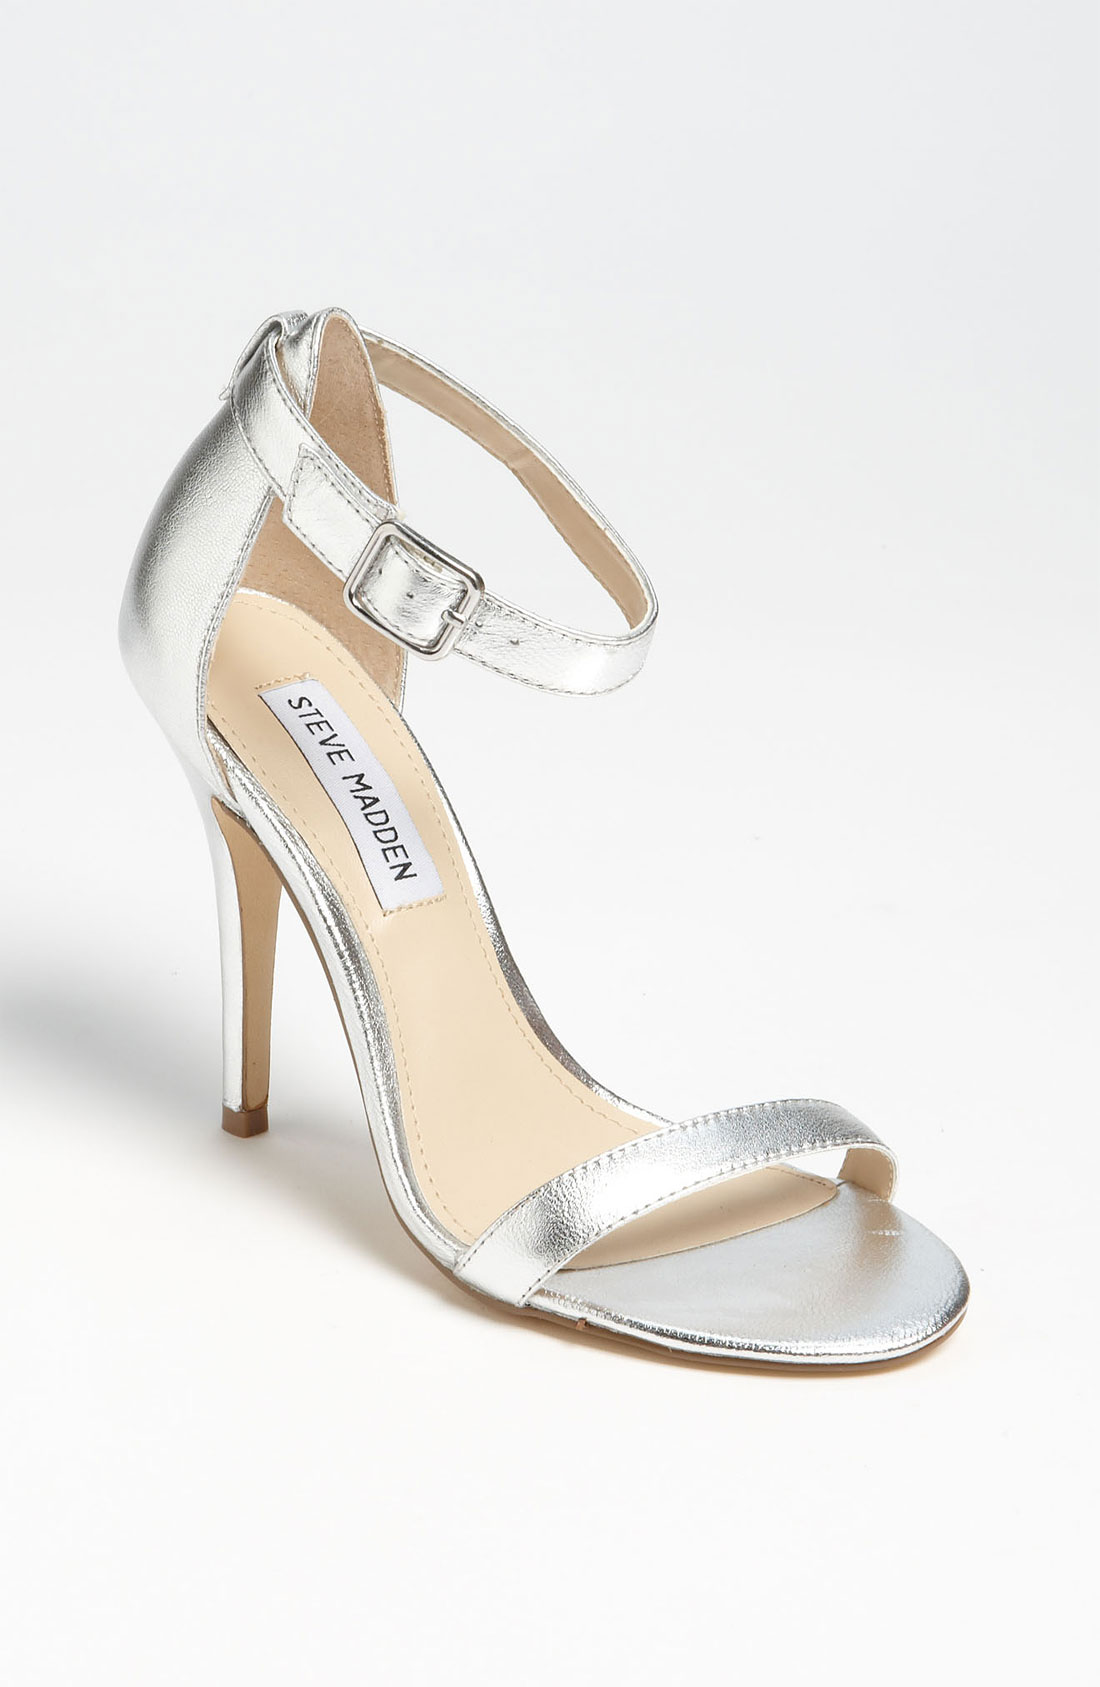 d8156c27dda Shoeniverse: Realove sandals in many colours by Steve Madden